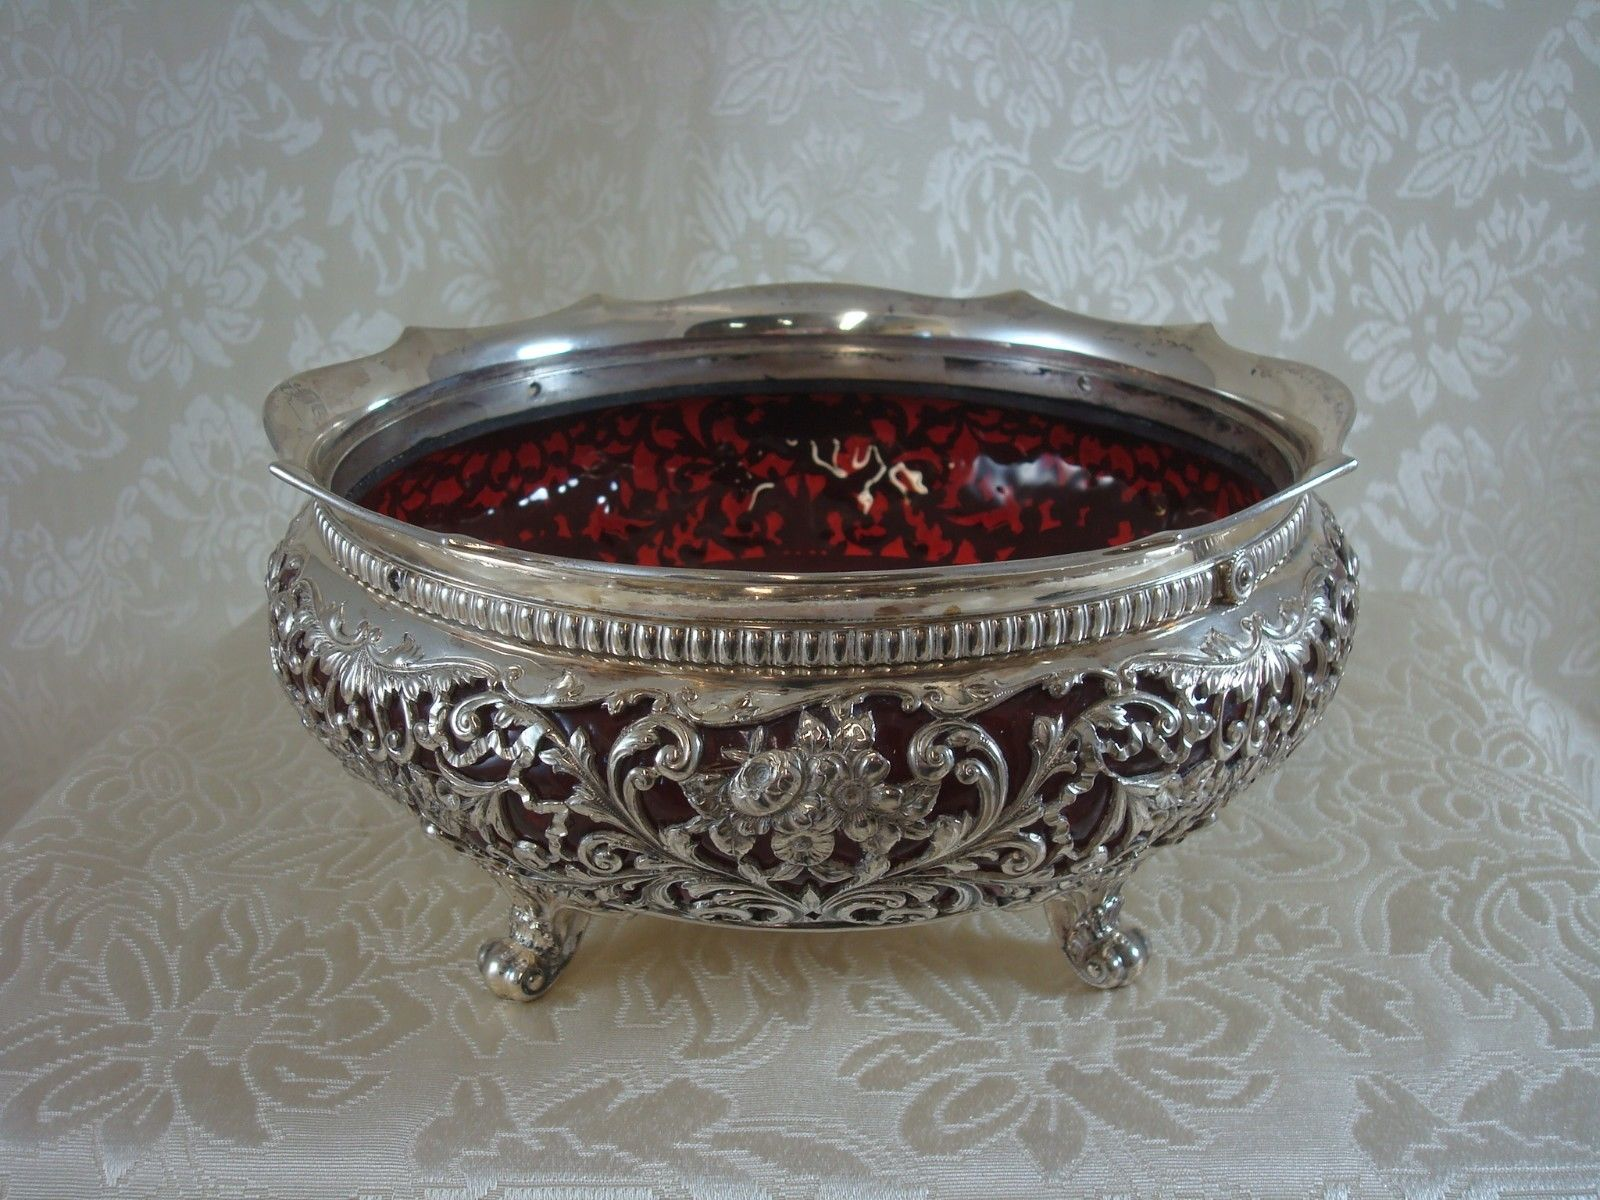 Metal Centerpiece Bowl Gorham Sterling Silver Centerpiece Bowl W Ruby Glass